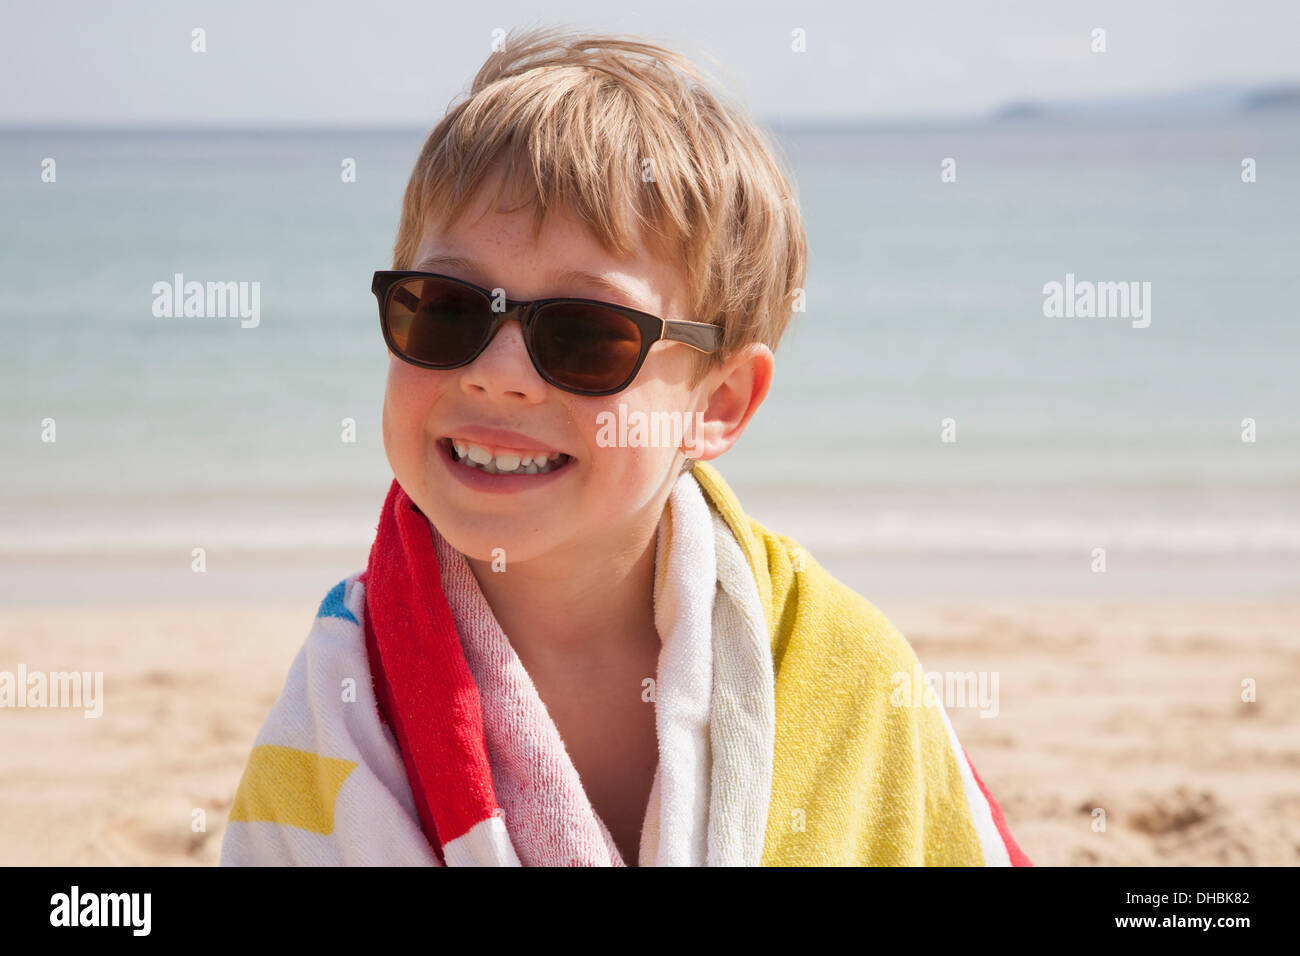 A boy in sunglasses on the beach, with a towel around his shoulders. - Stock Image